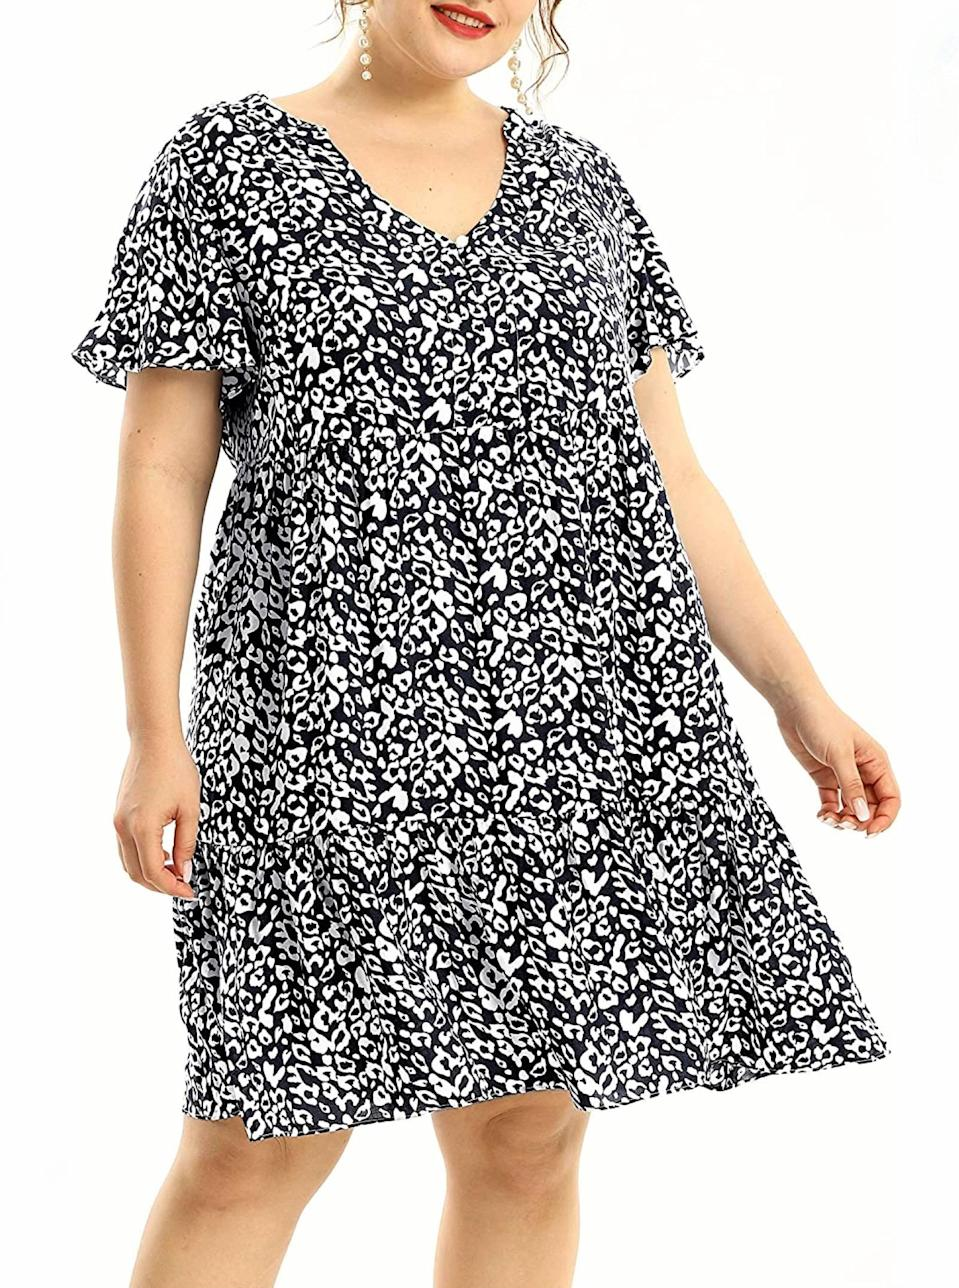 """The kind of summertime staple you'll be hard pressed to take off. $24, Amazon. <a href=""""https://www.amazon.com/Light-Dresses-Women-Ruffle-Length/dp/B08DK6H8B1/"""" rel=""""nofollow noopener"""" target=""""_blank"""" data-ylk=""""slk:Get it now!"""" class=""""link rapid-noclick-resp"""">Get it now!</a>"""